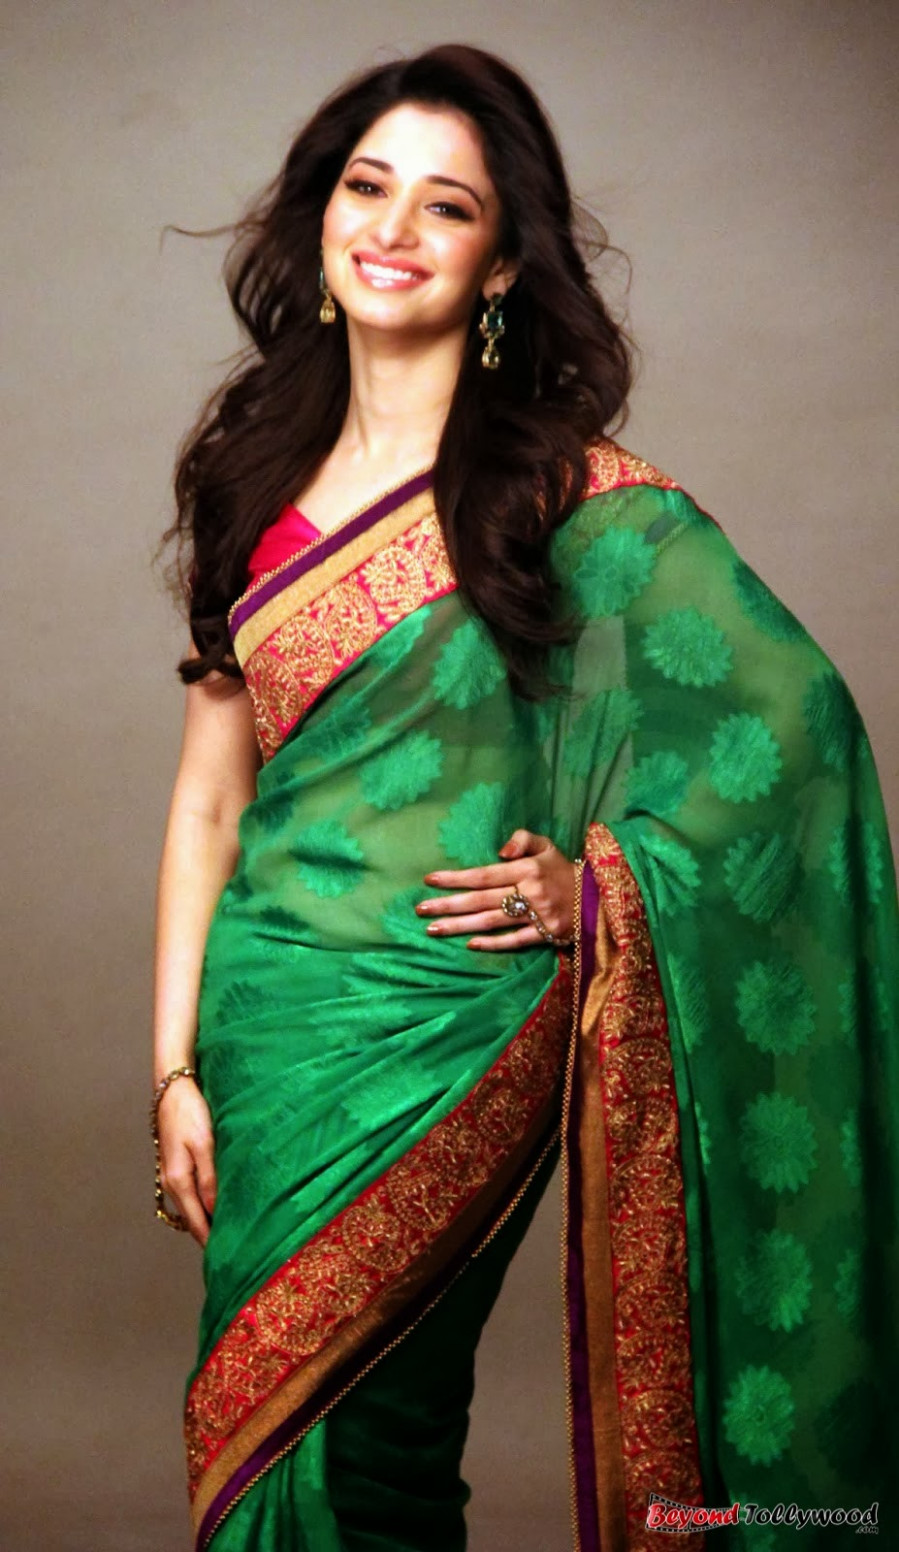 spicyimg: Tamanna Latest Saree Photoshoot Stills